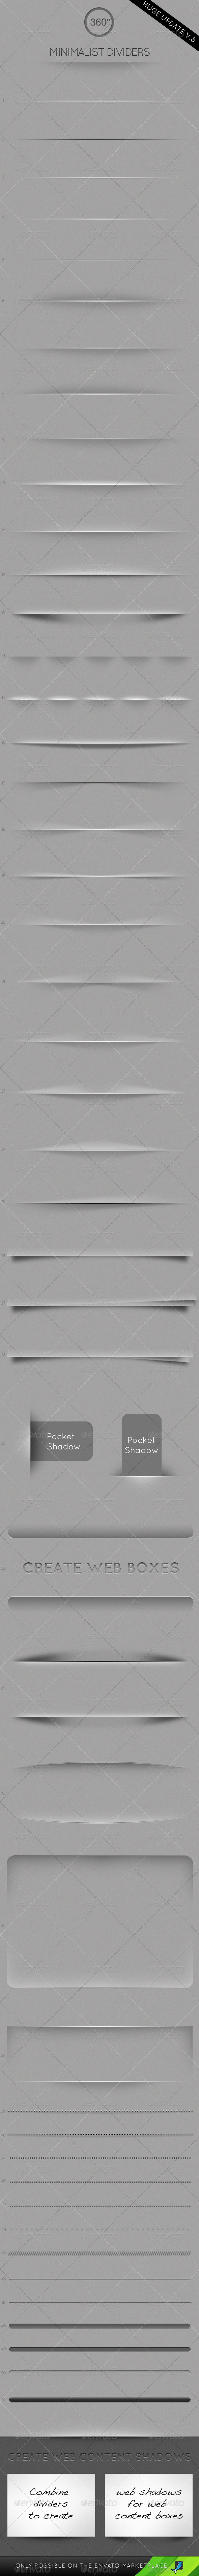 GraphicRiver Minimalist Dividers Resizable 146824